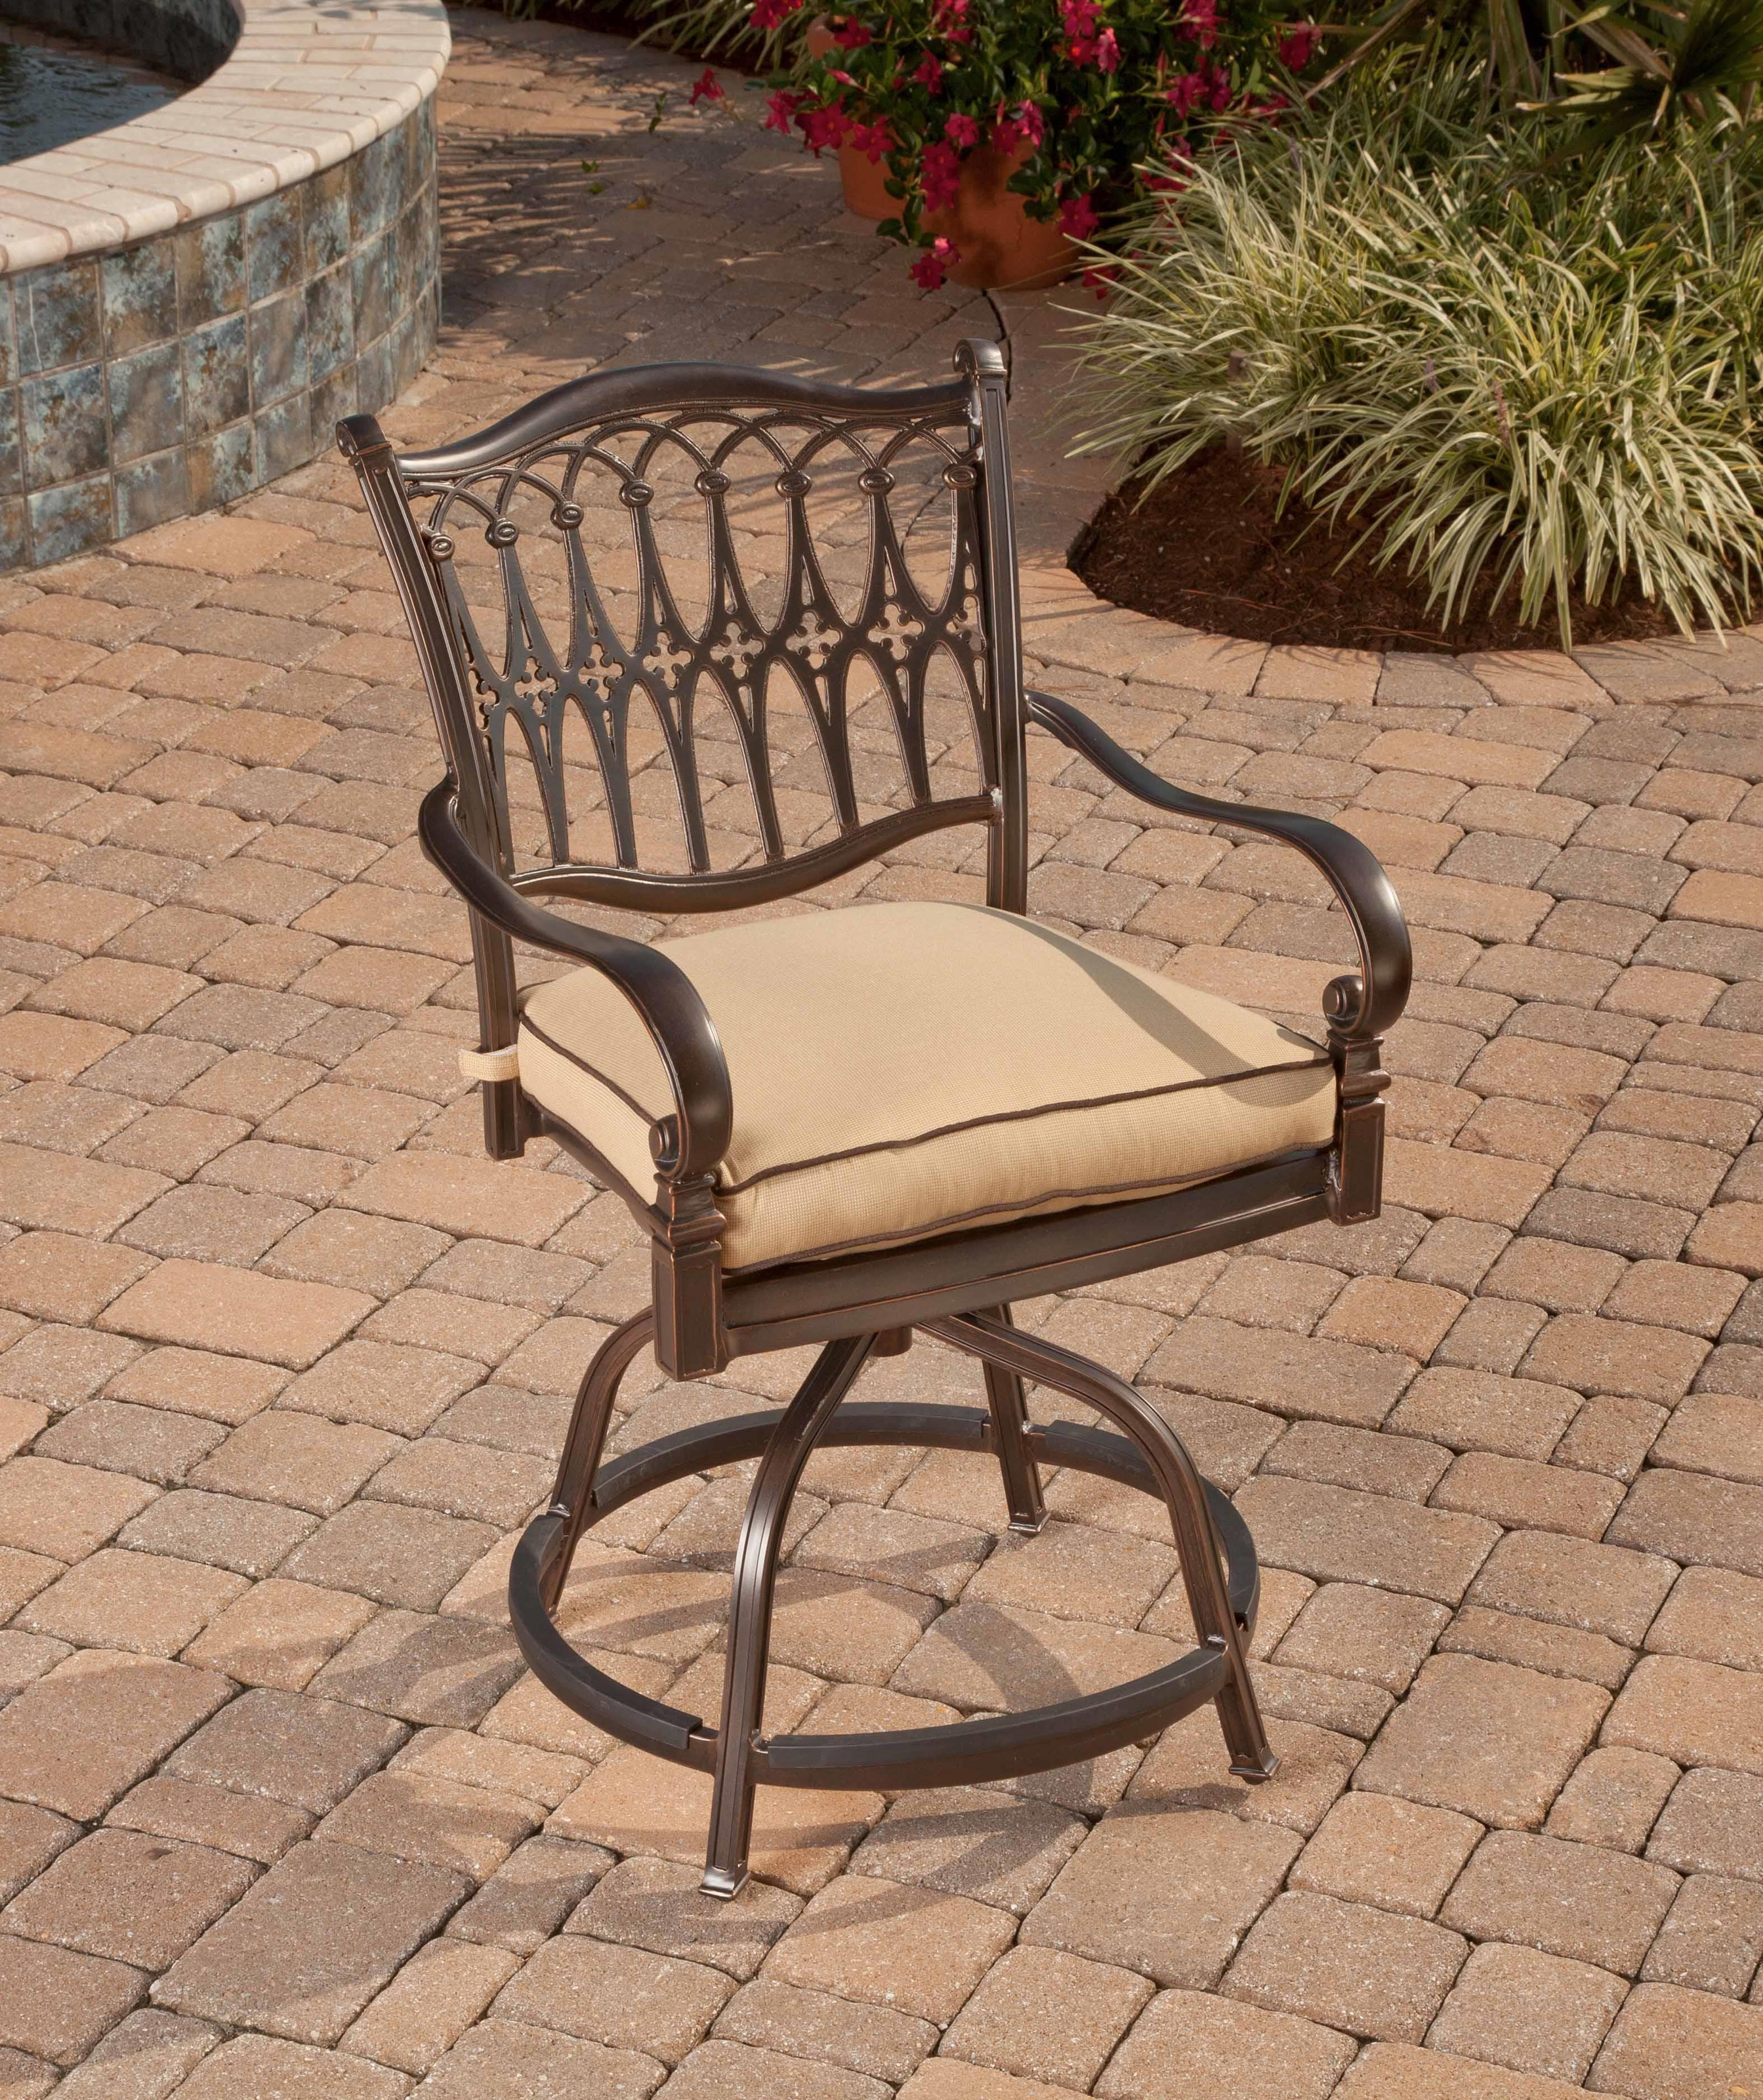 Agio Fire Pits 2016 Balmoral Swivel Barstool - Item Number: AAC08511P01